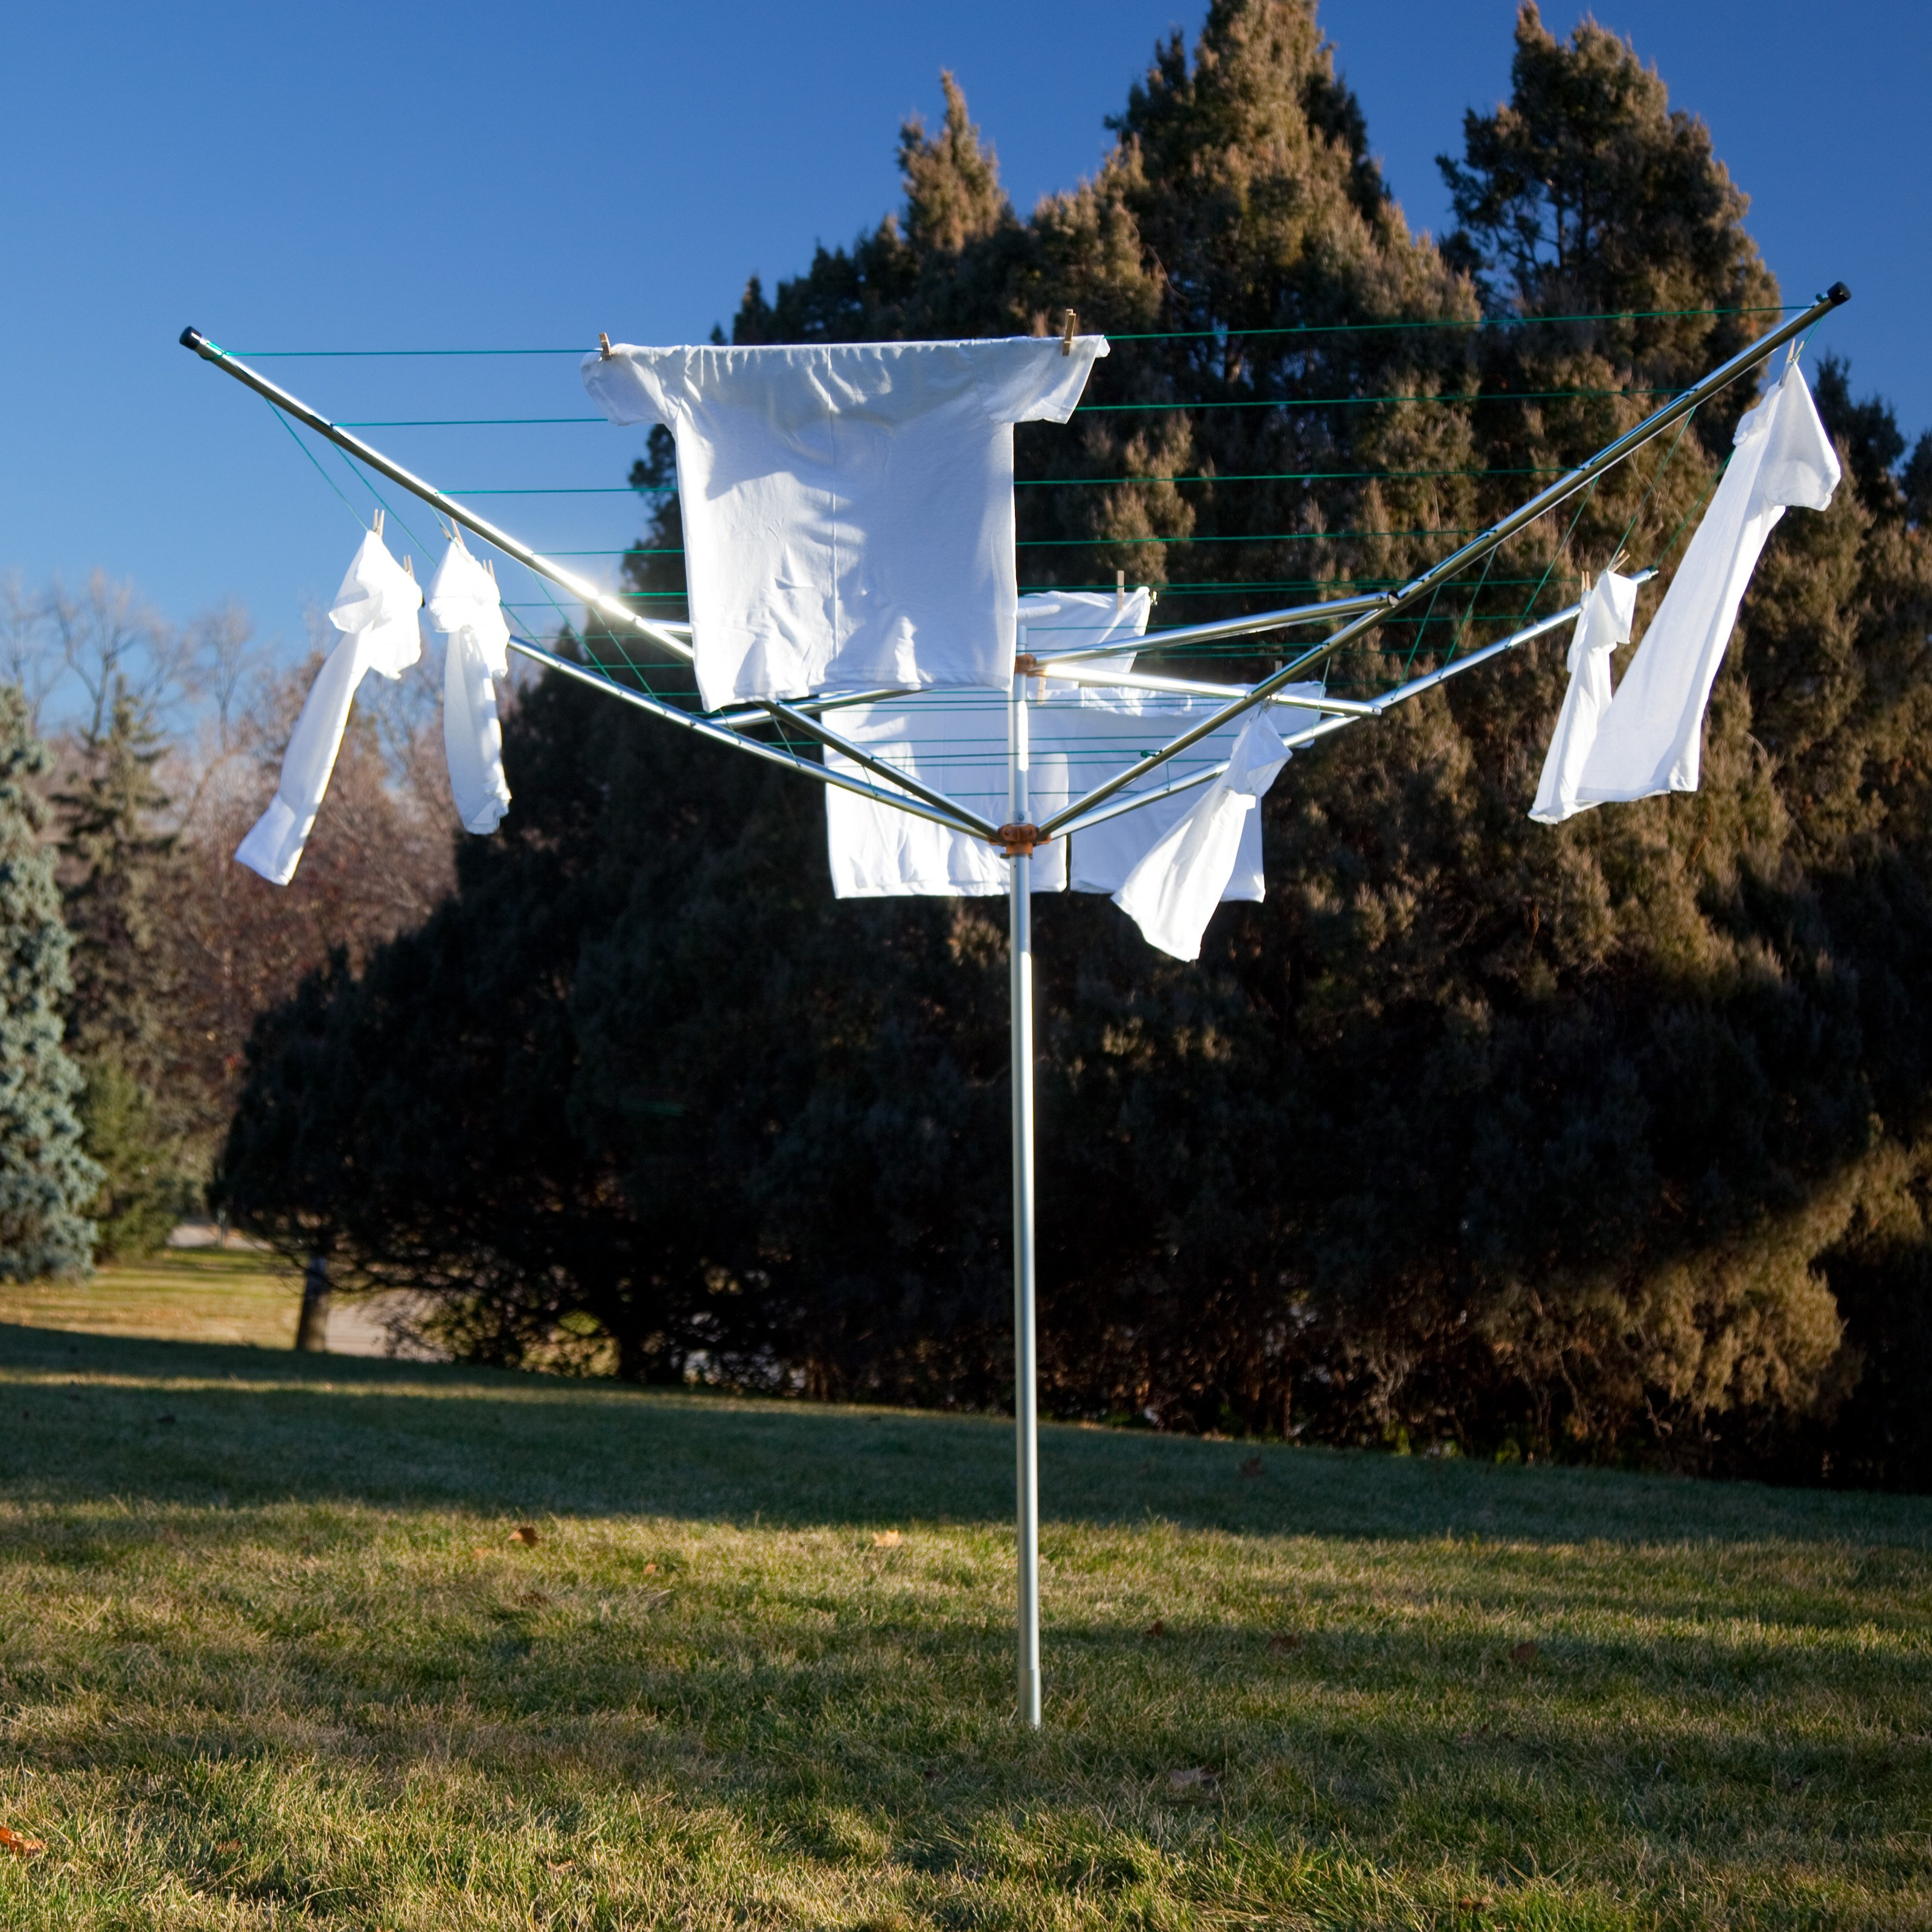 Breezecatcher TS4-36M 7-Line Outdoor Umbrella Clothesline